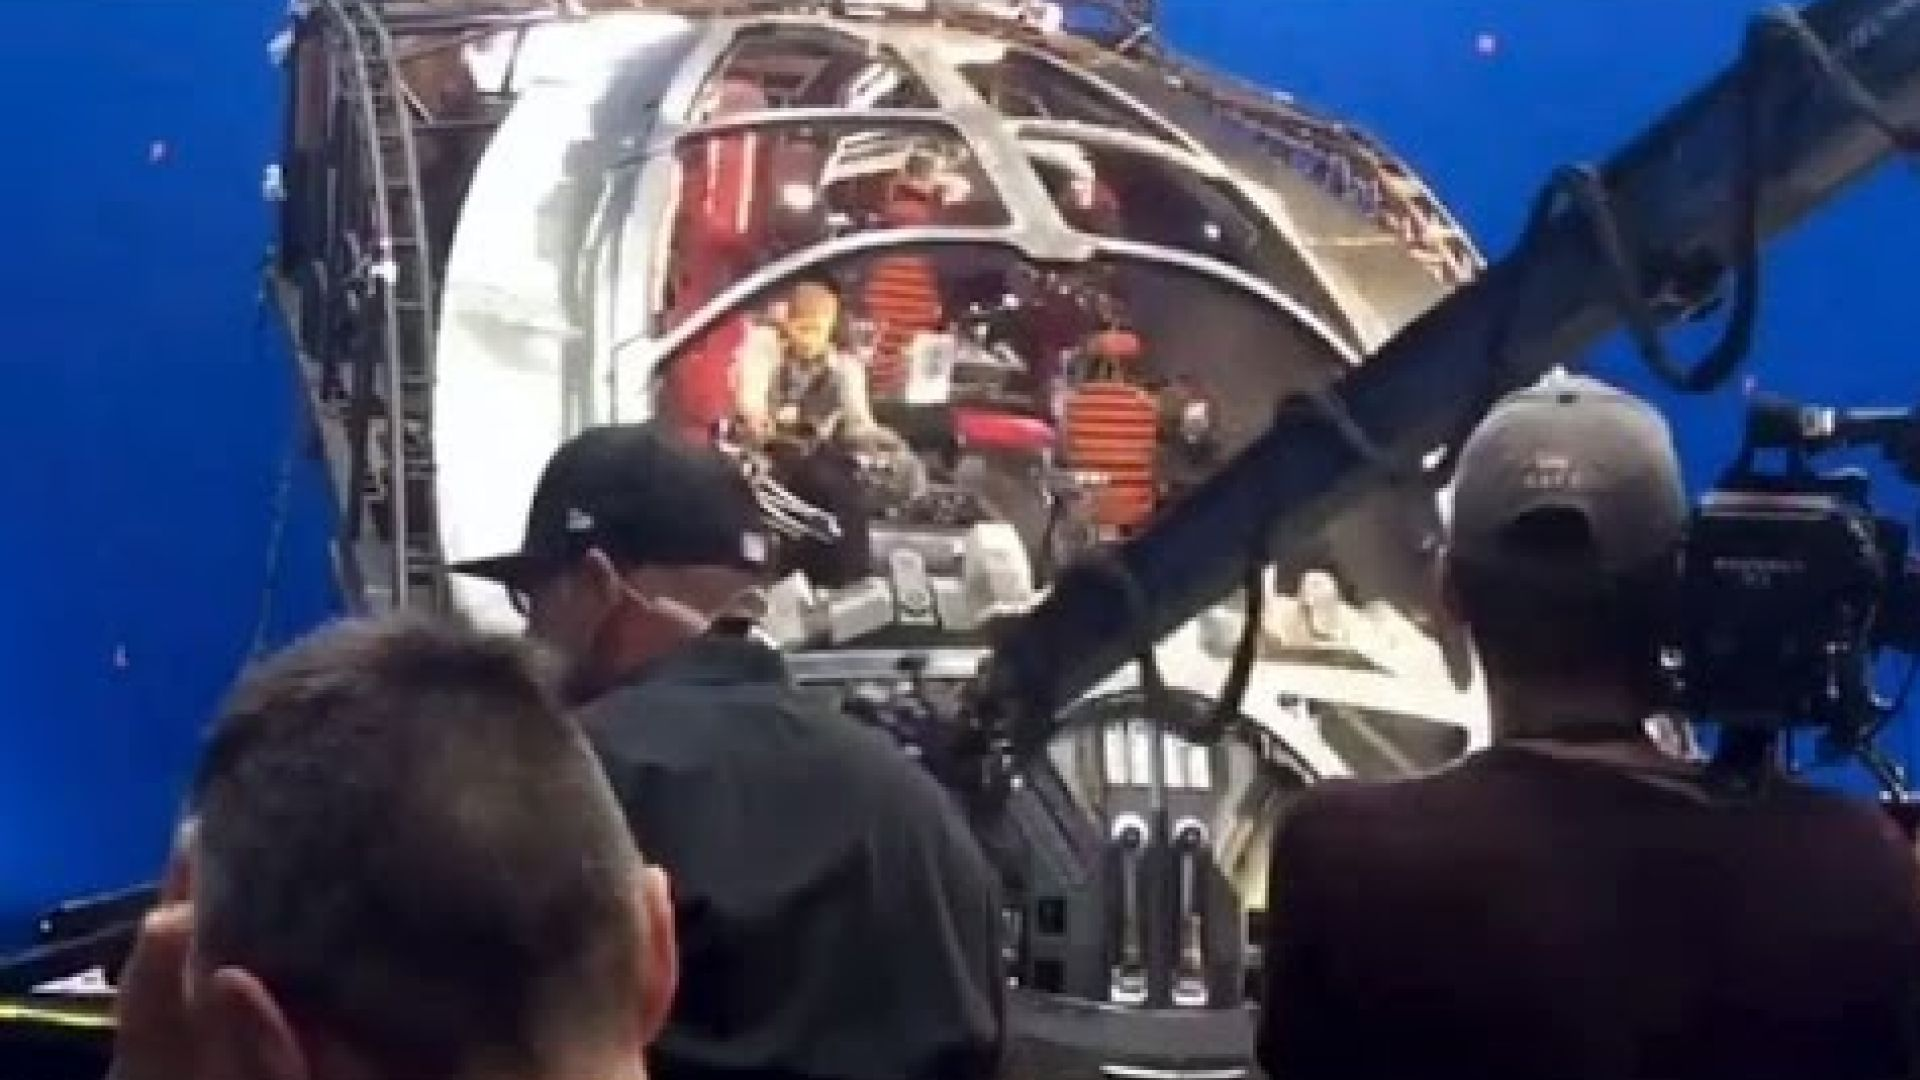 Behind the Scenes video on Guardians of the Galaxy Vol. 2